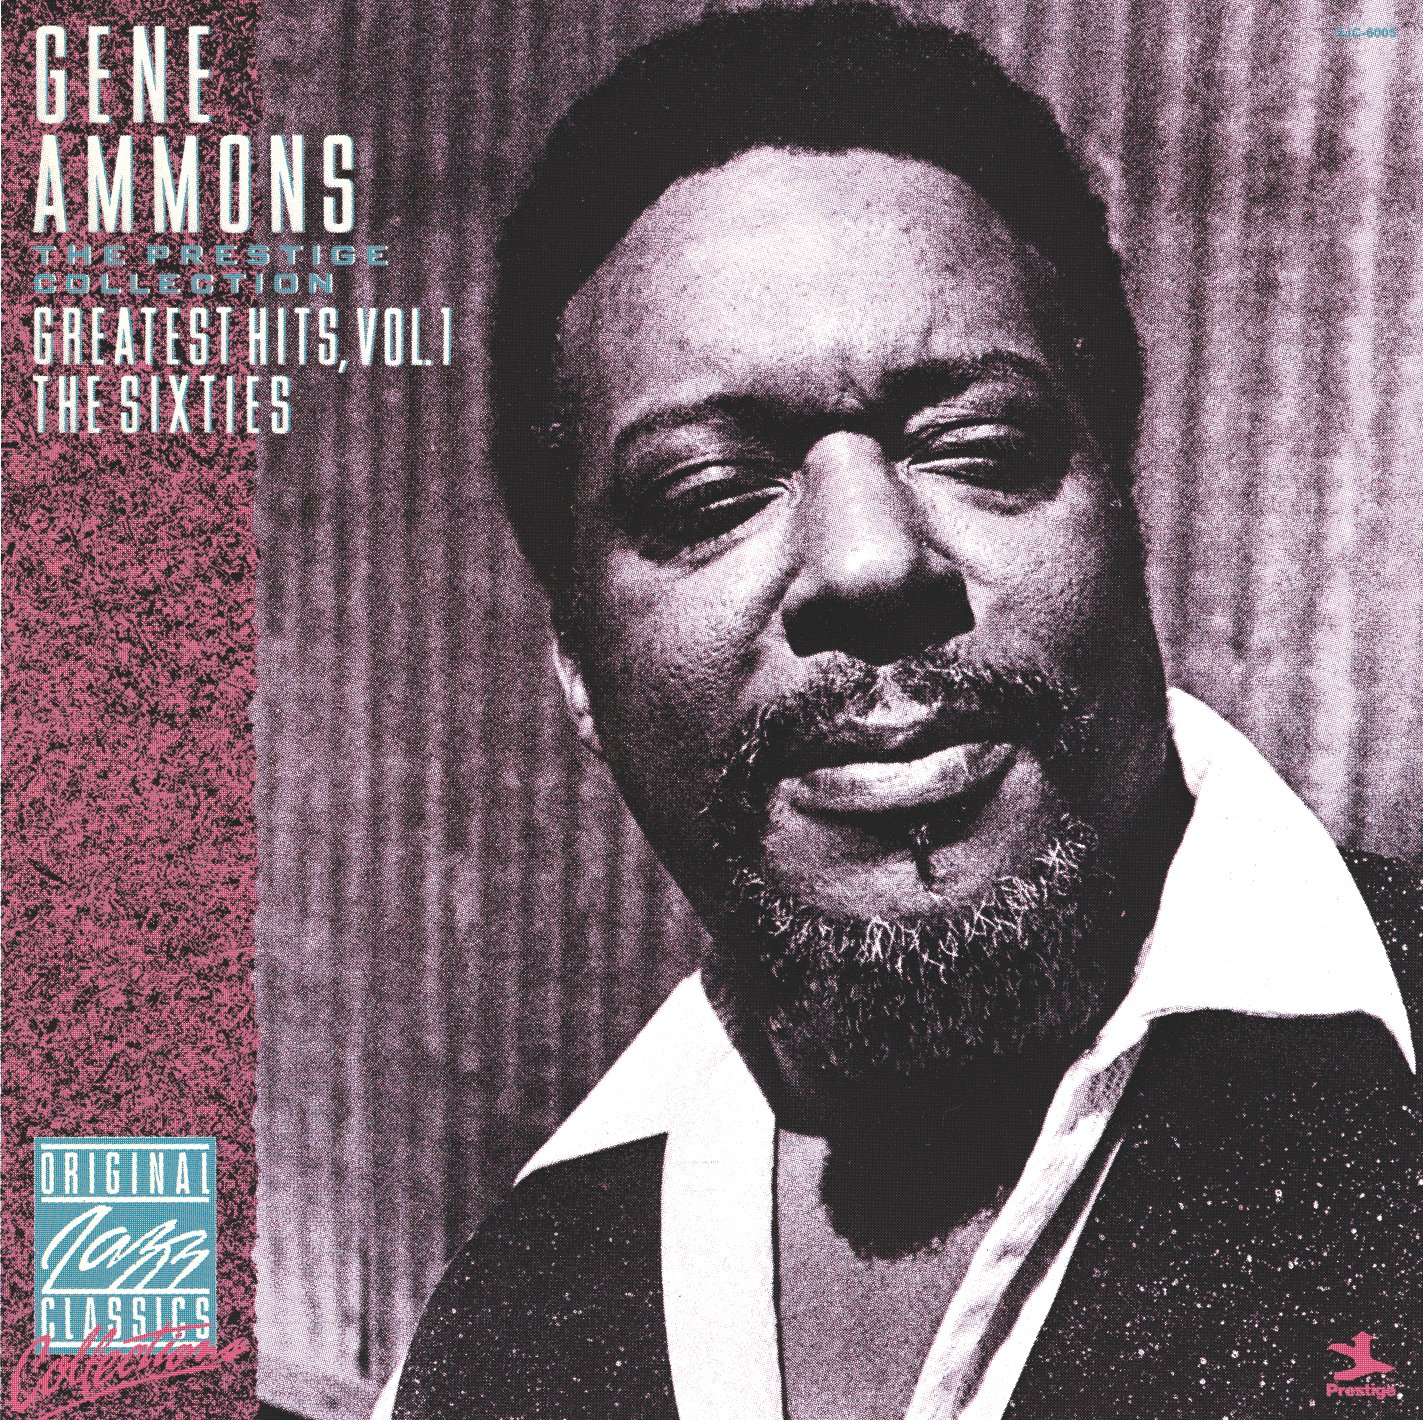 Gene Ammons – Greatest Hits, Vol 1: The Sixties (1988) [FLAC]